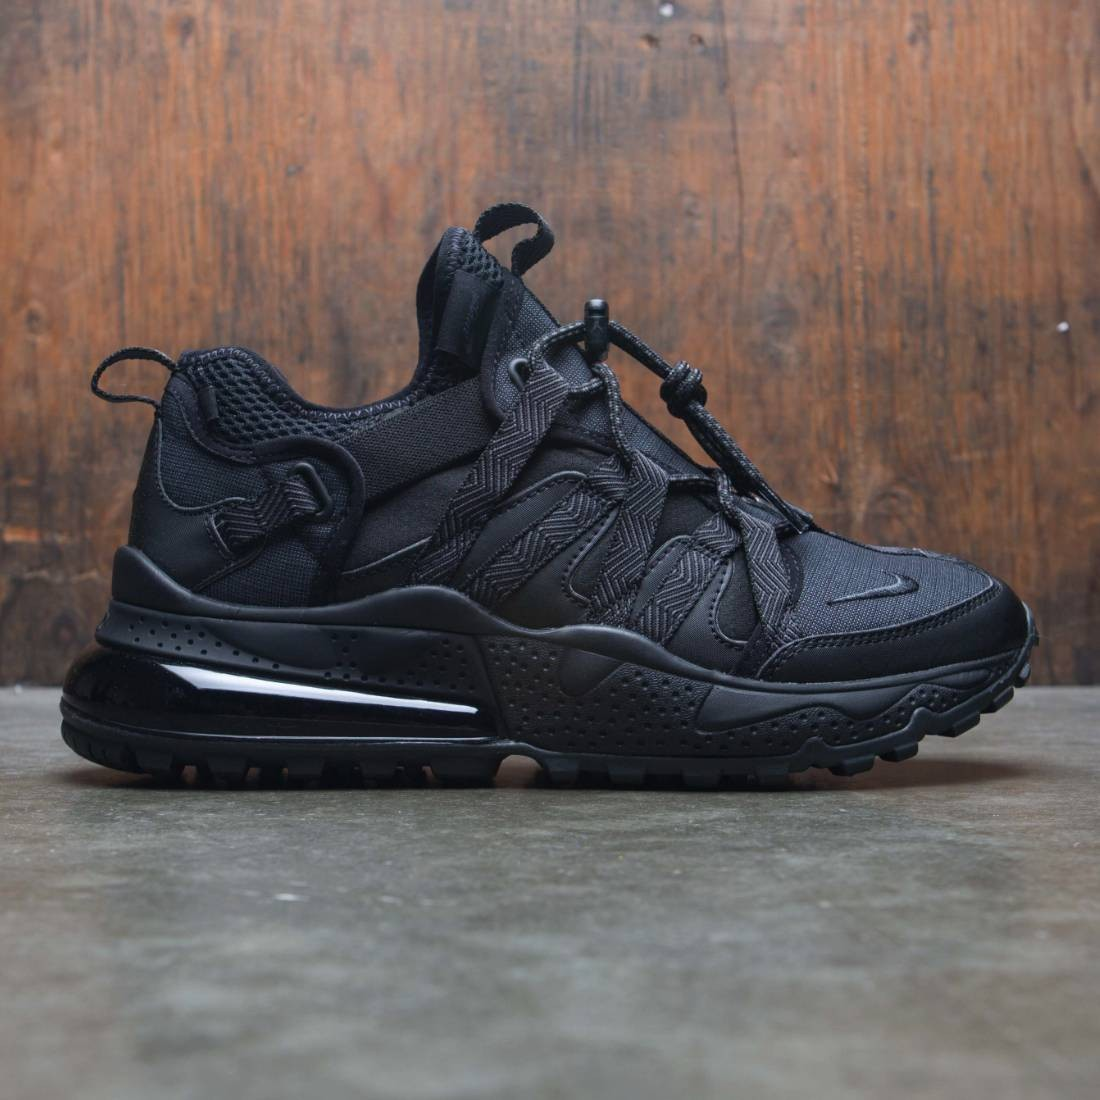 nike air max 270 bowfin black